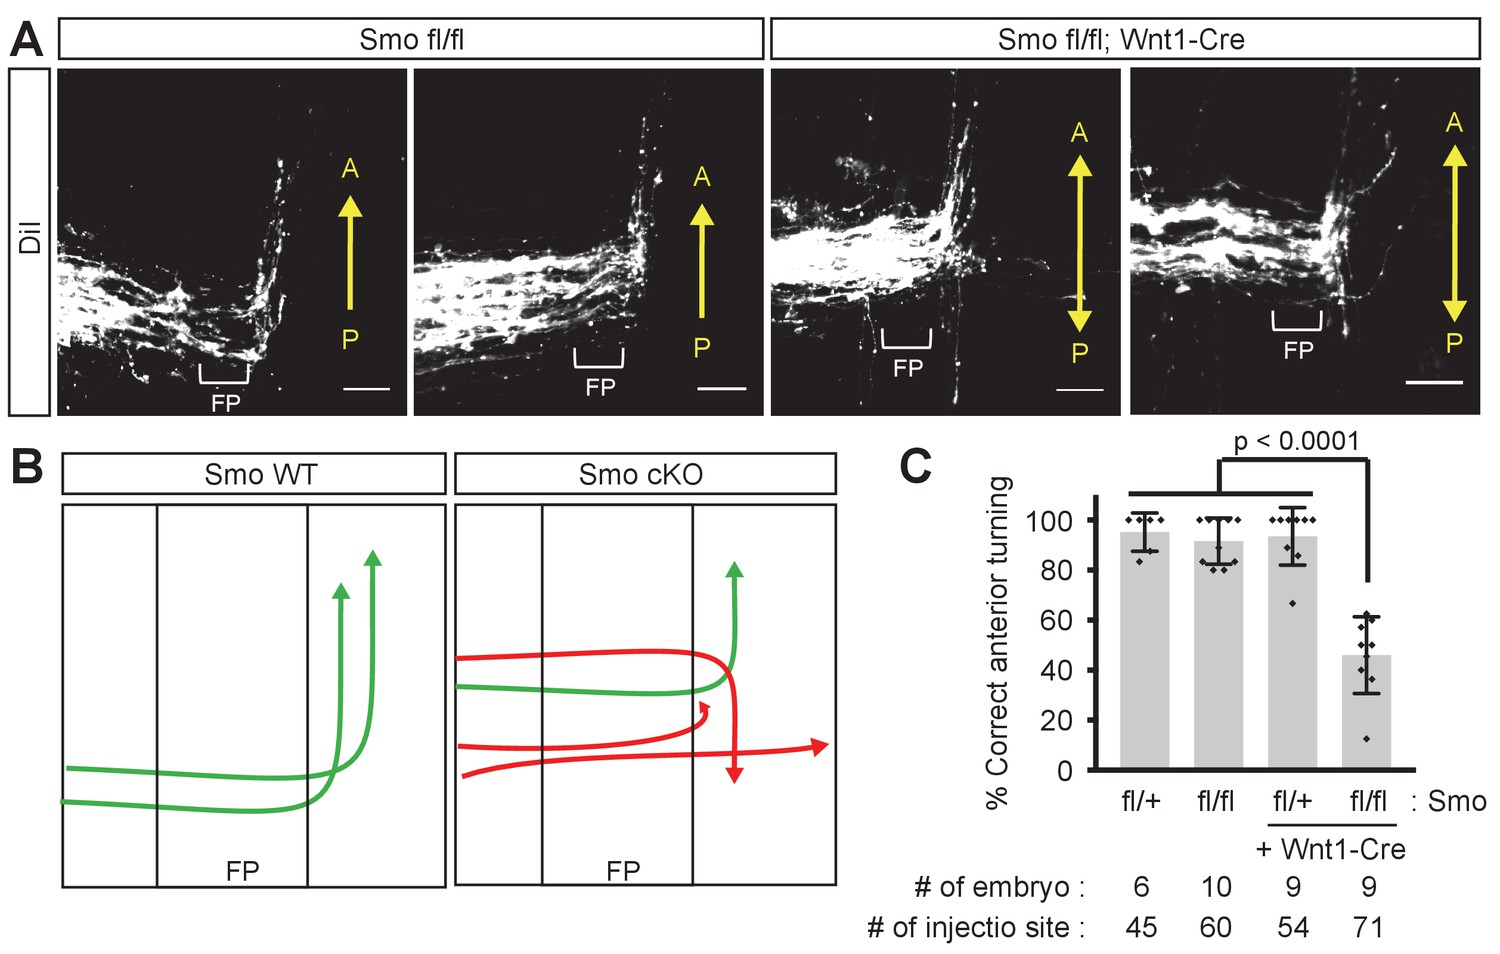 sonic hedgehog switches on wnt planar cell polarity signaling in